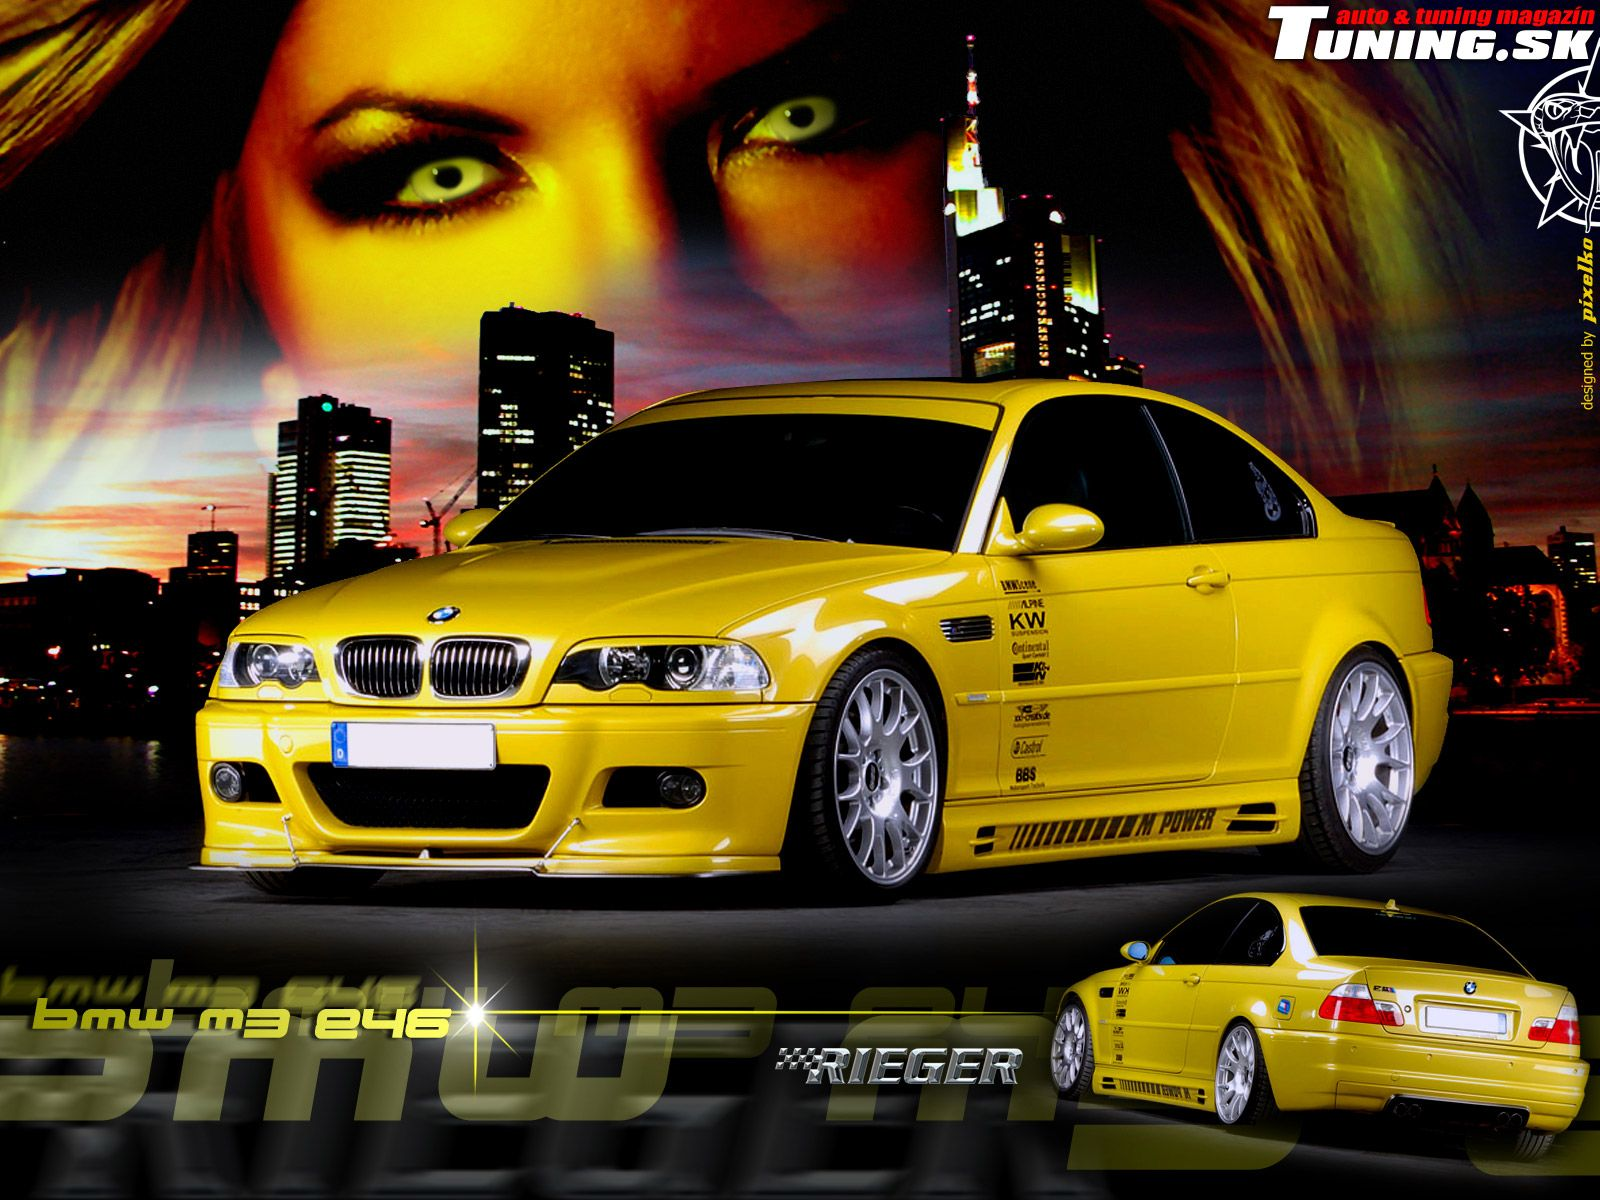 Amazing Rieger Tuning Bmw M3 E46 19655 Tuning Wallpaper Photo Bmw Tuning Bmw Bmw M3 Top Cars